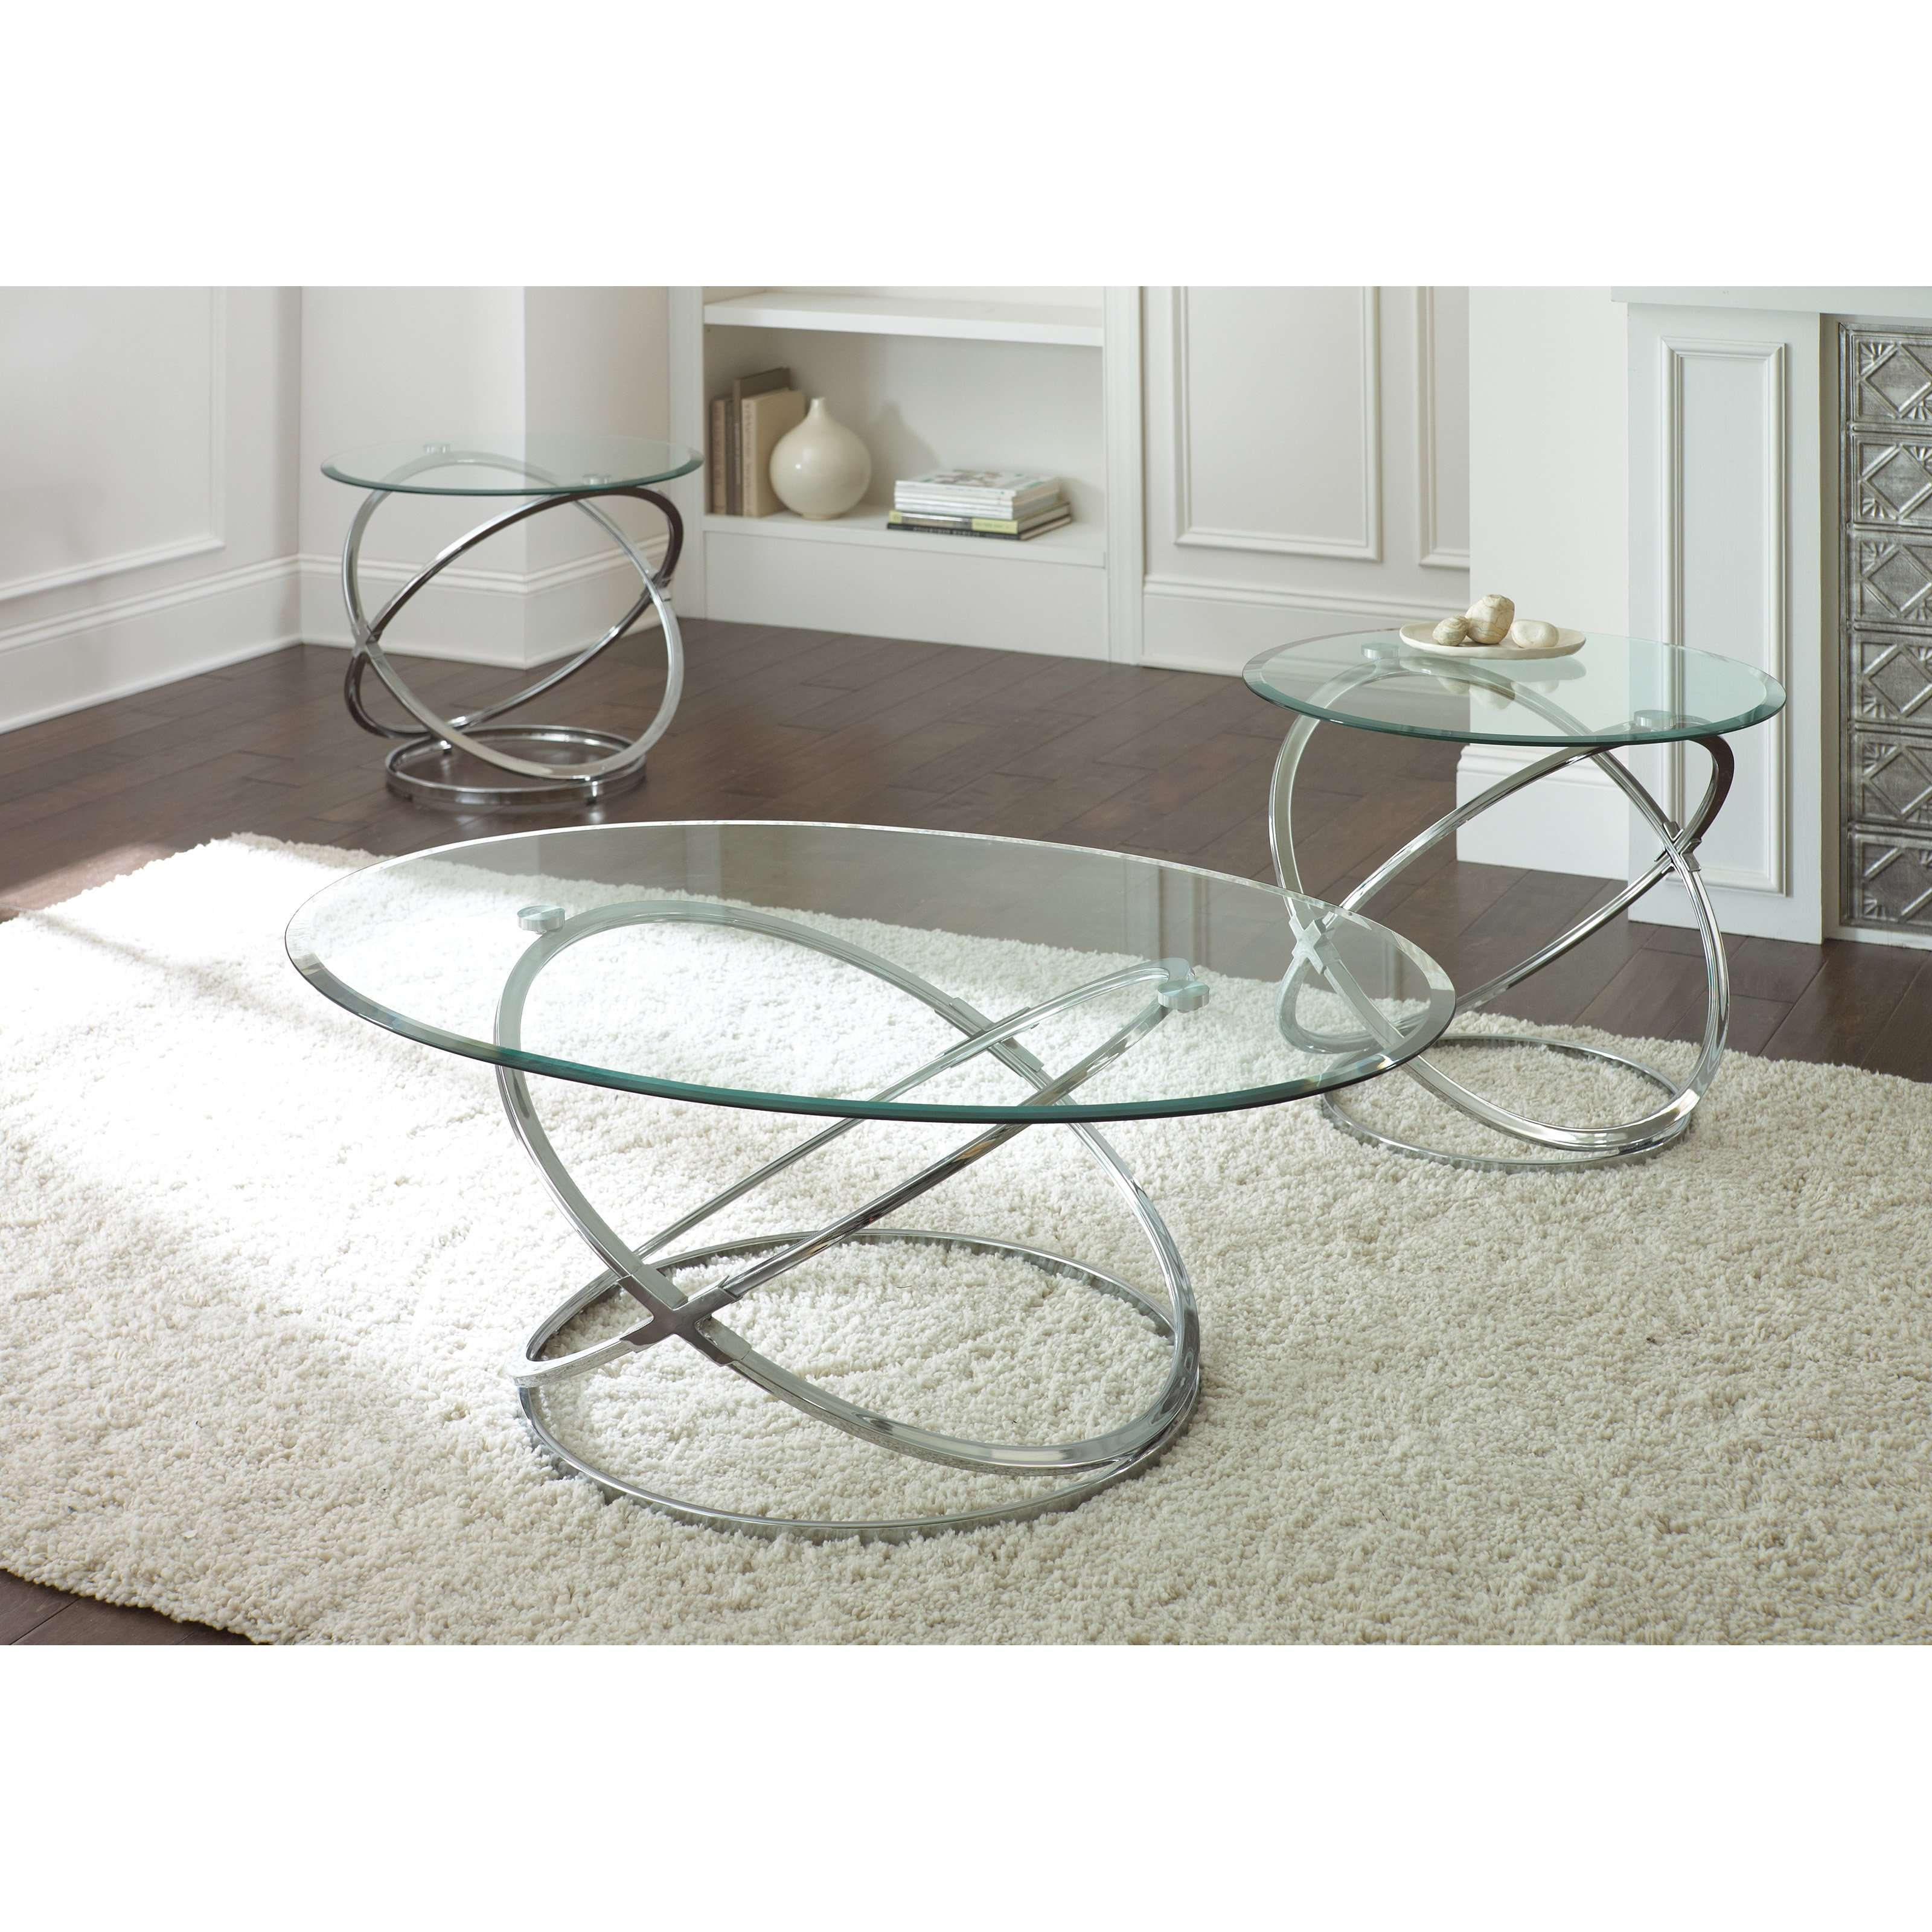 Well Liked Chrome Glass Coffee Tables Throughout Steve Silver Orion Oval Chrome And Glass Coffee Table Set (View 5 of 20)